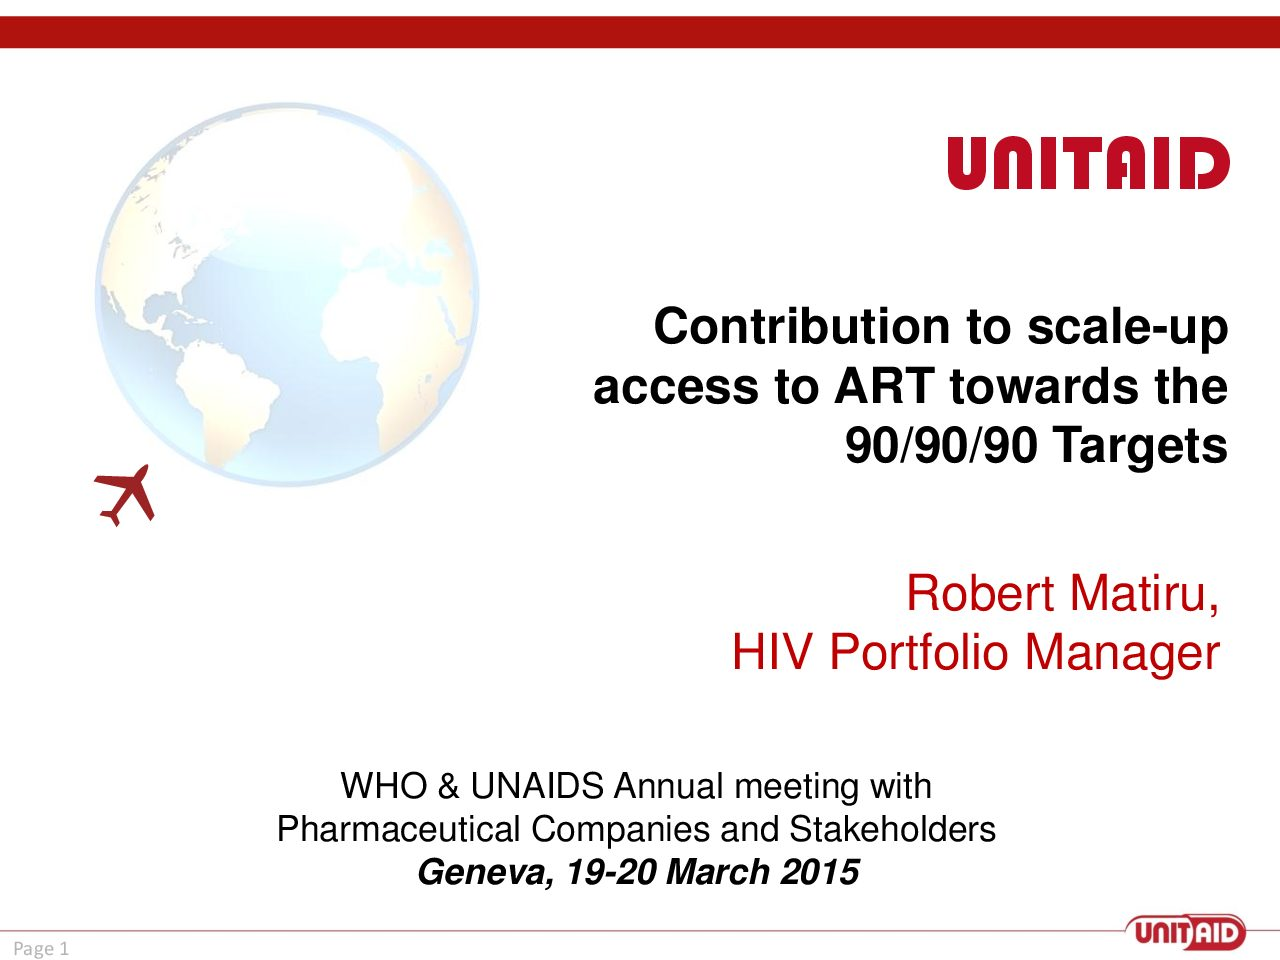 UNITAID contribution to scale-up access to ART towards the 90-90-90 targets.